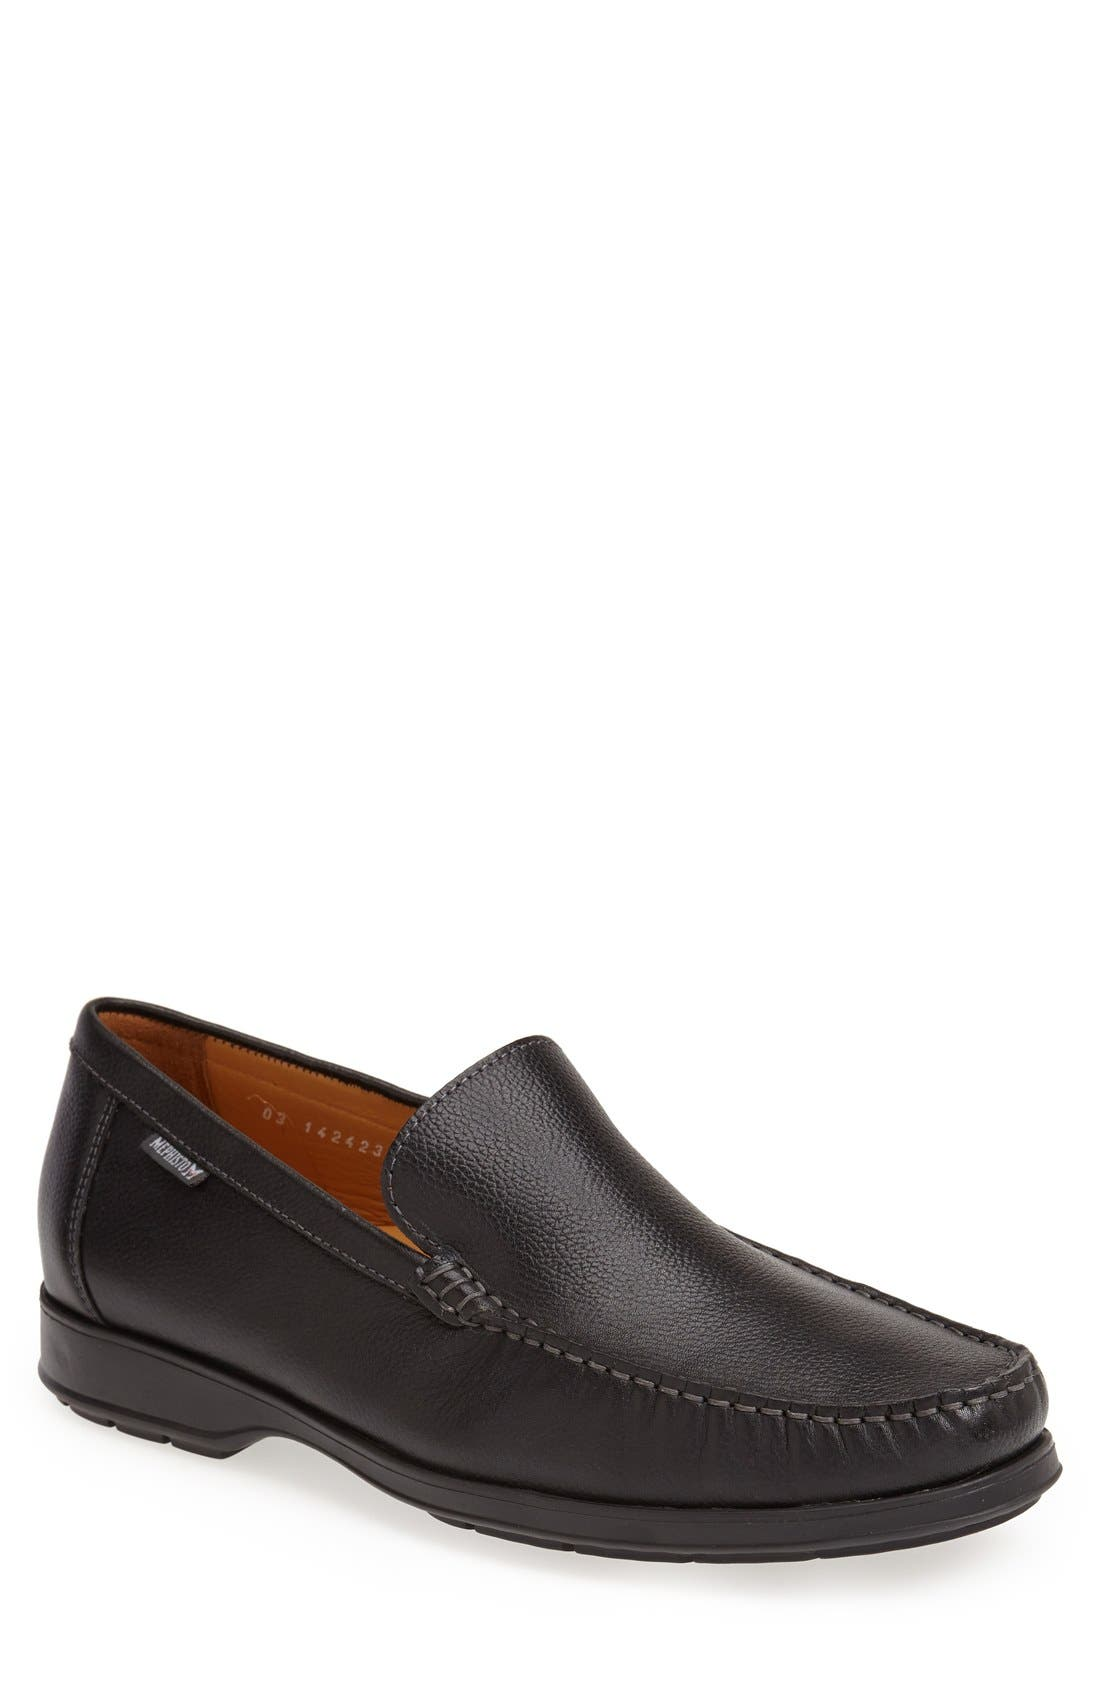 Main Image - Mephisto 'Henri' Loafer (Men)